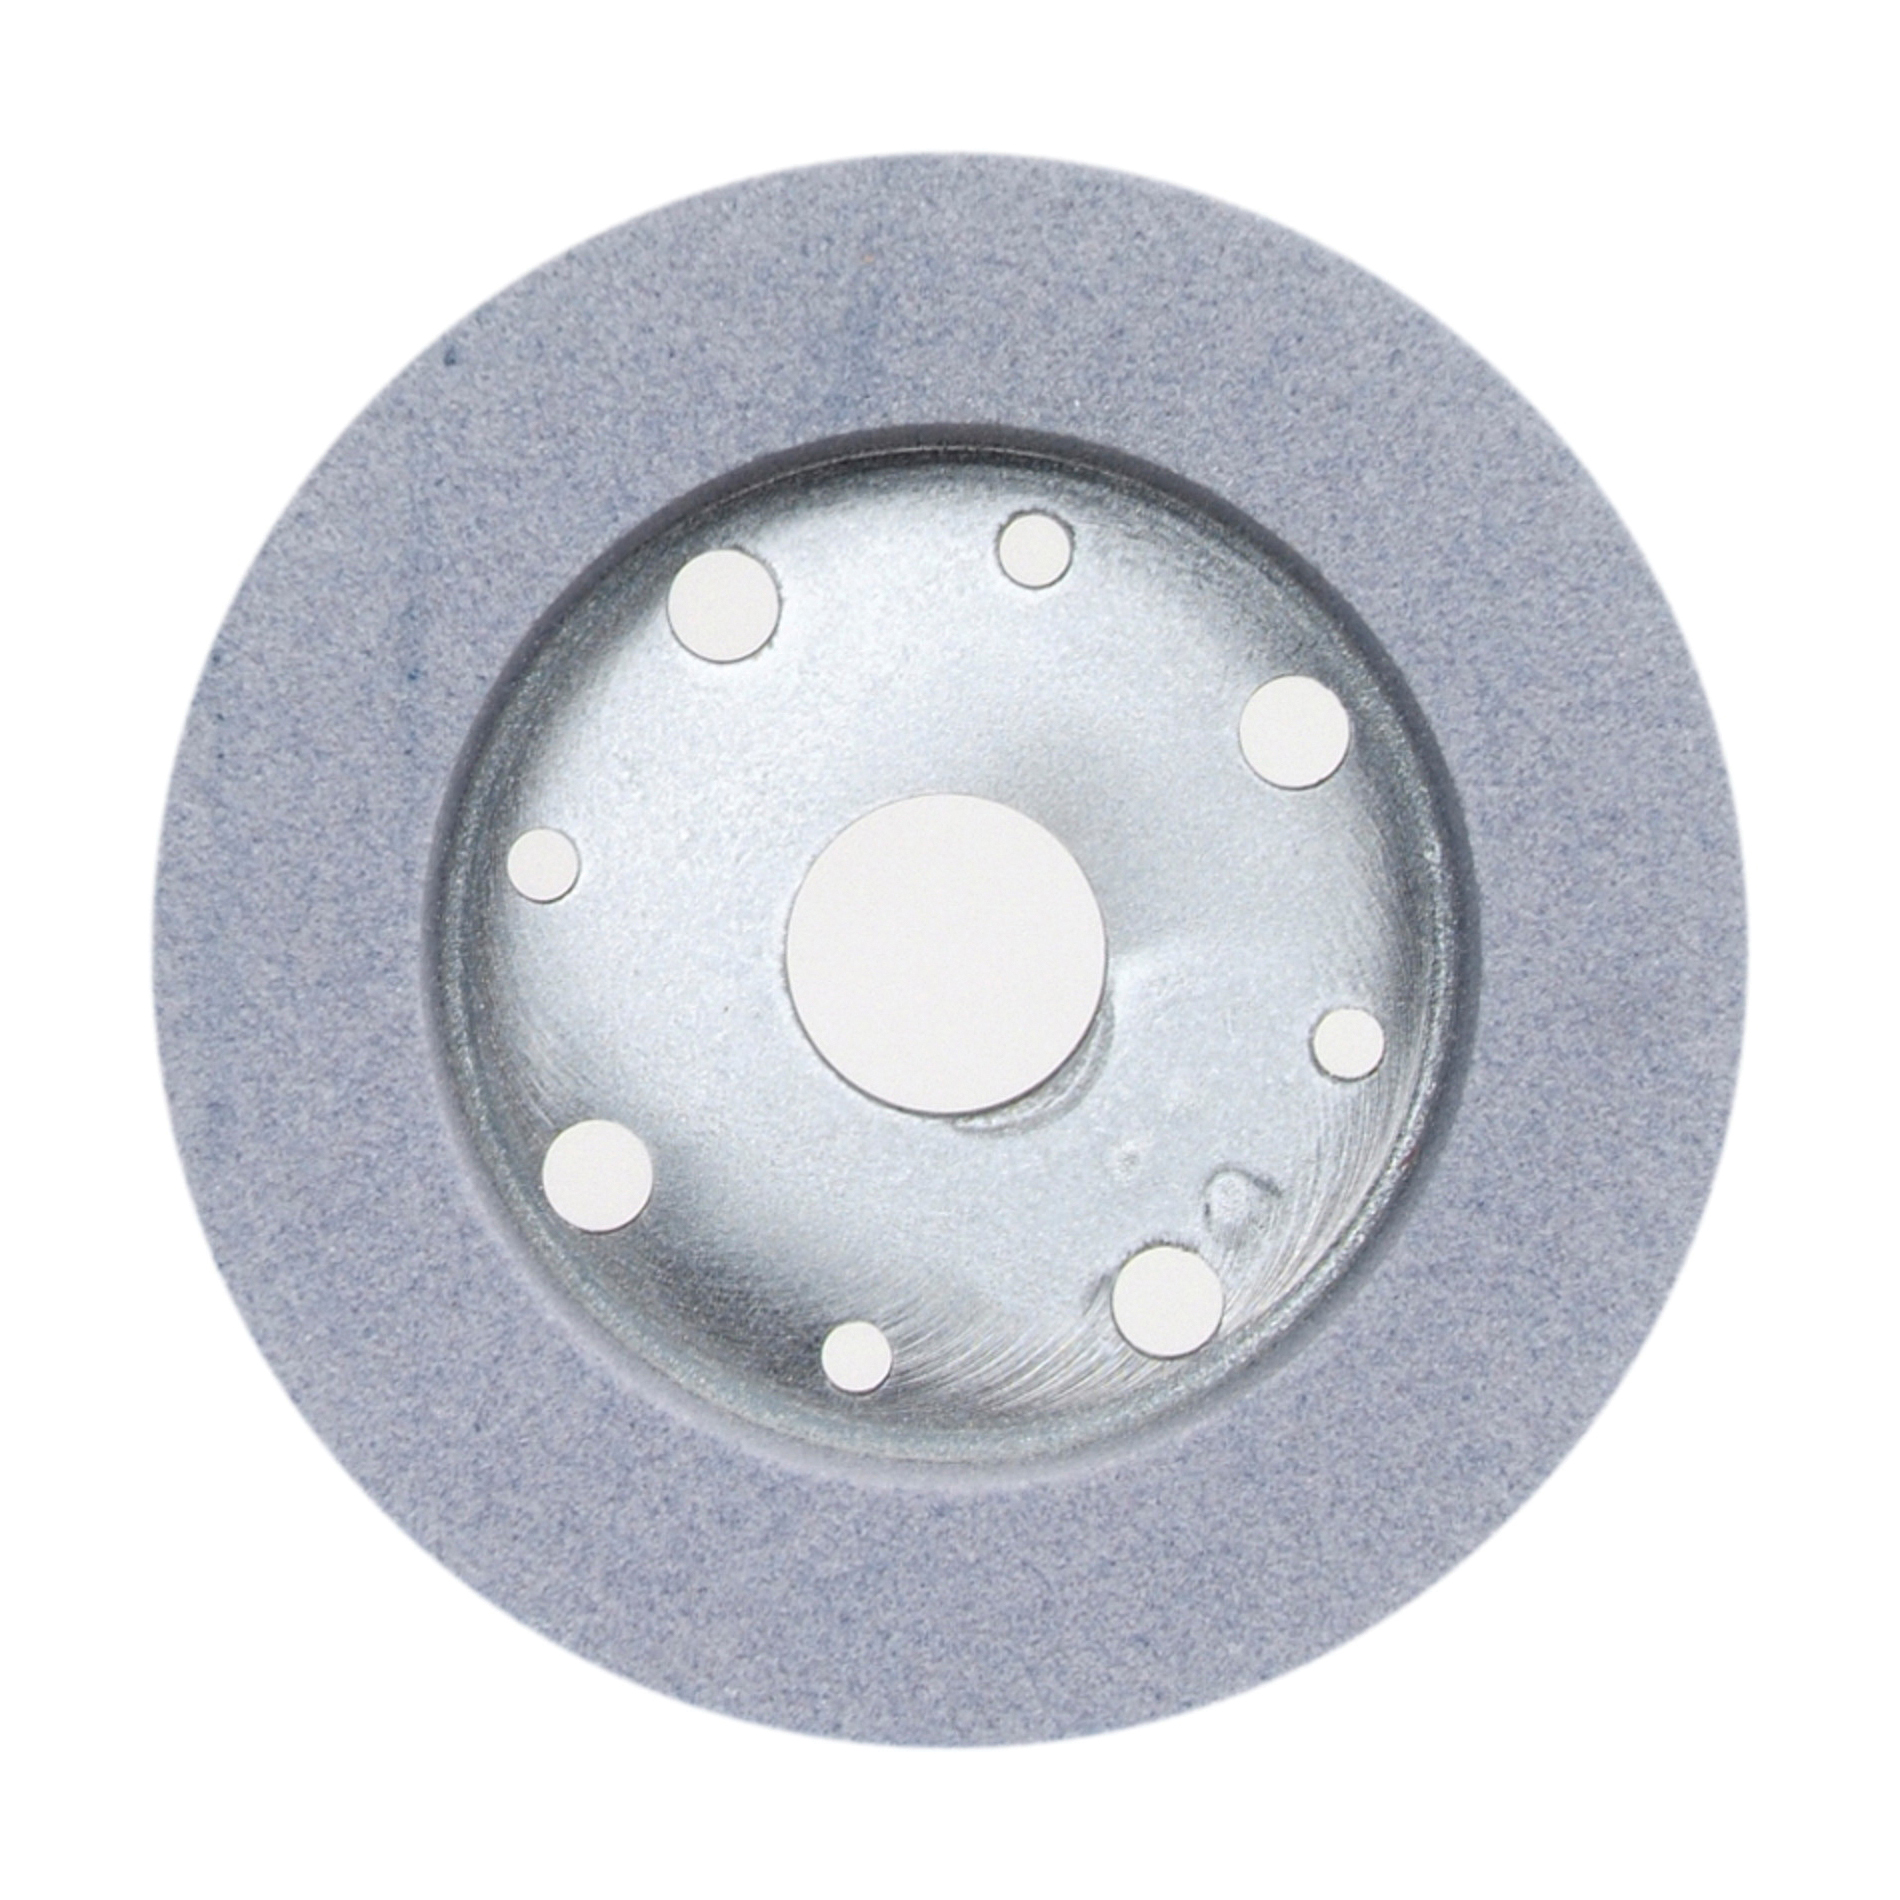 Norton® 66252838309 32A Cylinder Toolroom Wheel, 6 in Dia x 1 in THK, 4 in Center Hole, 60 Grit, Aluminum Oxide Abrasive